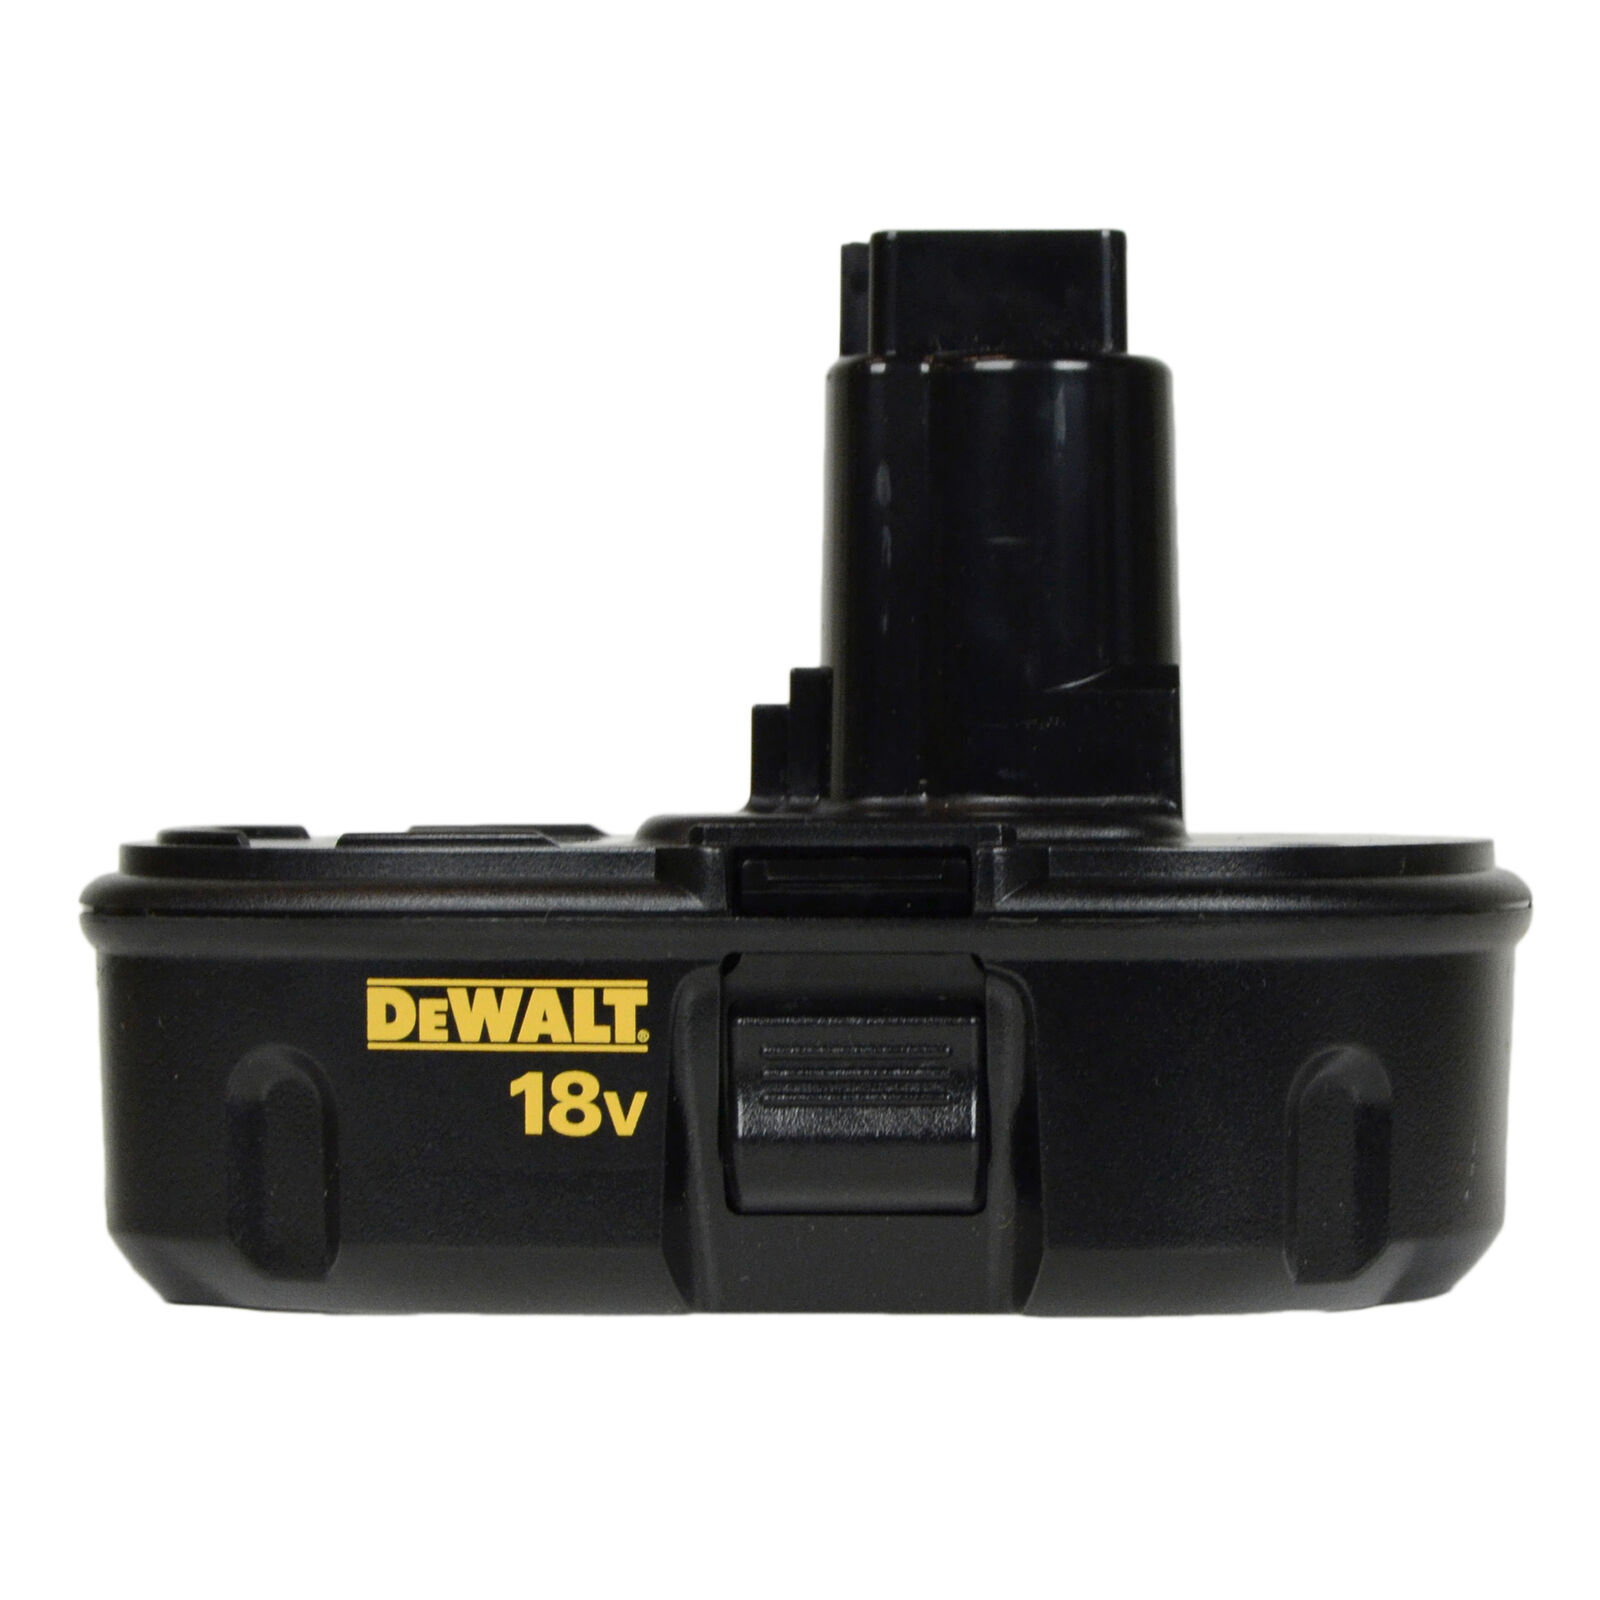 Dewalt DC9099 18V NiCd Pod Style Battery For DC970 DC720 DW960 DC759 DW908